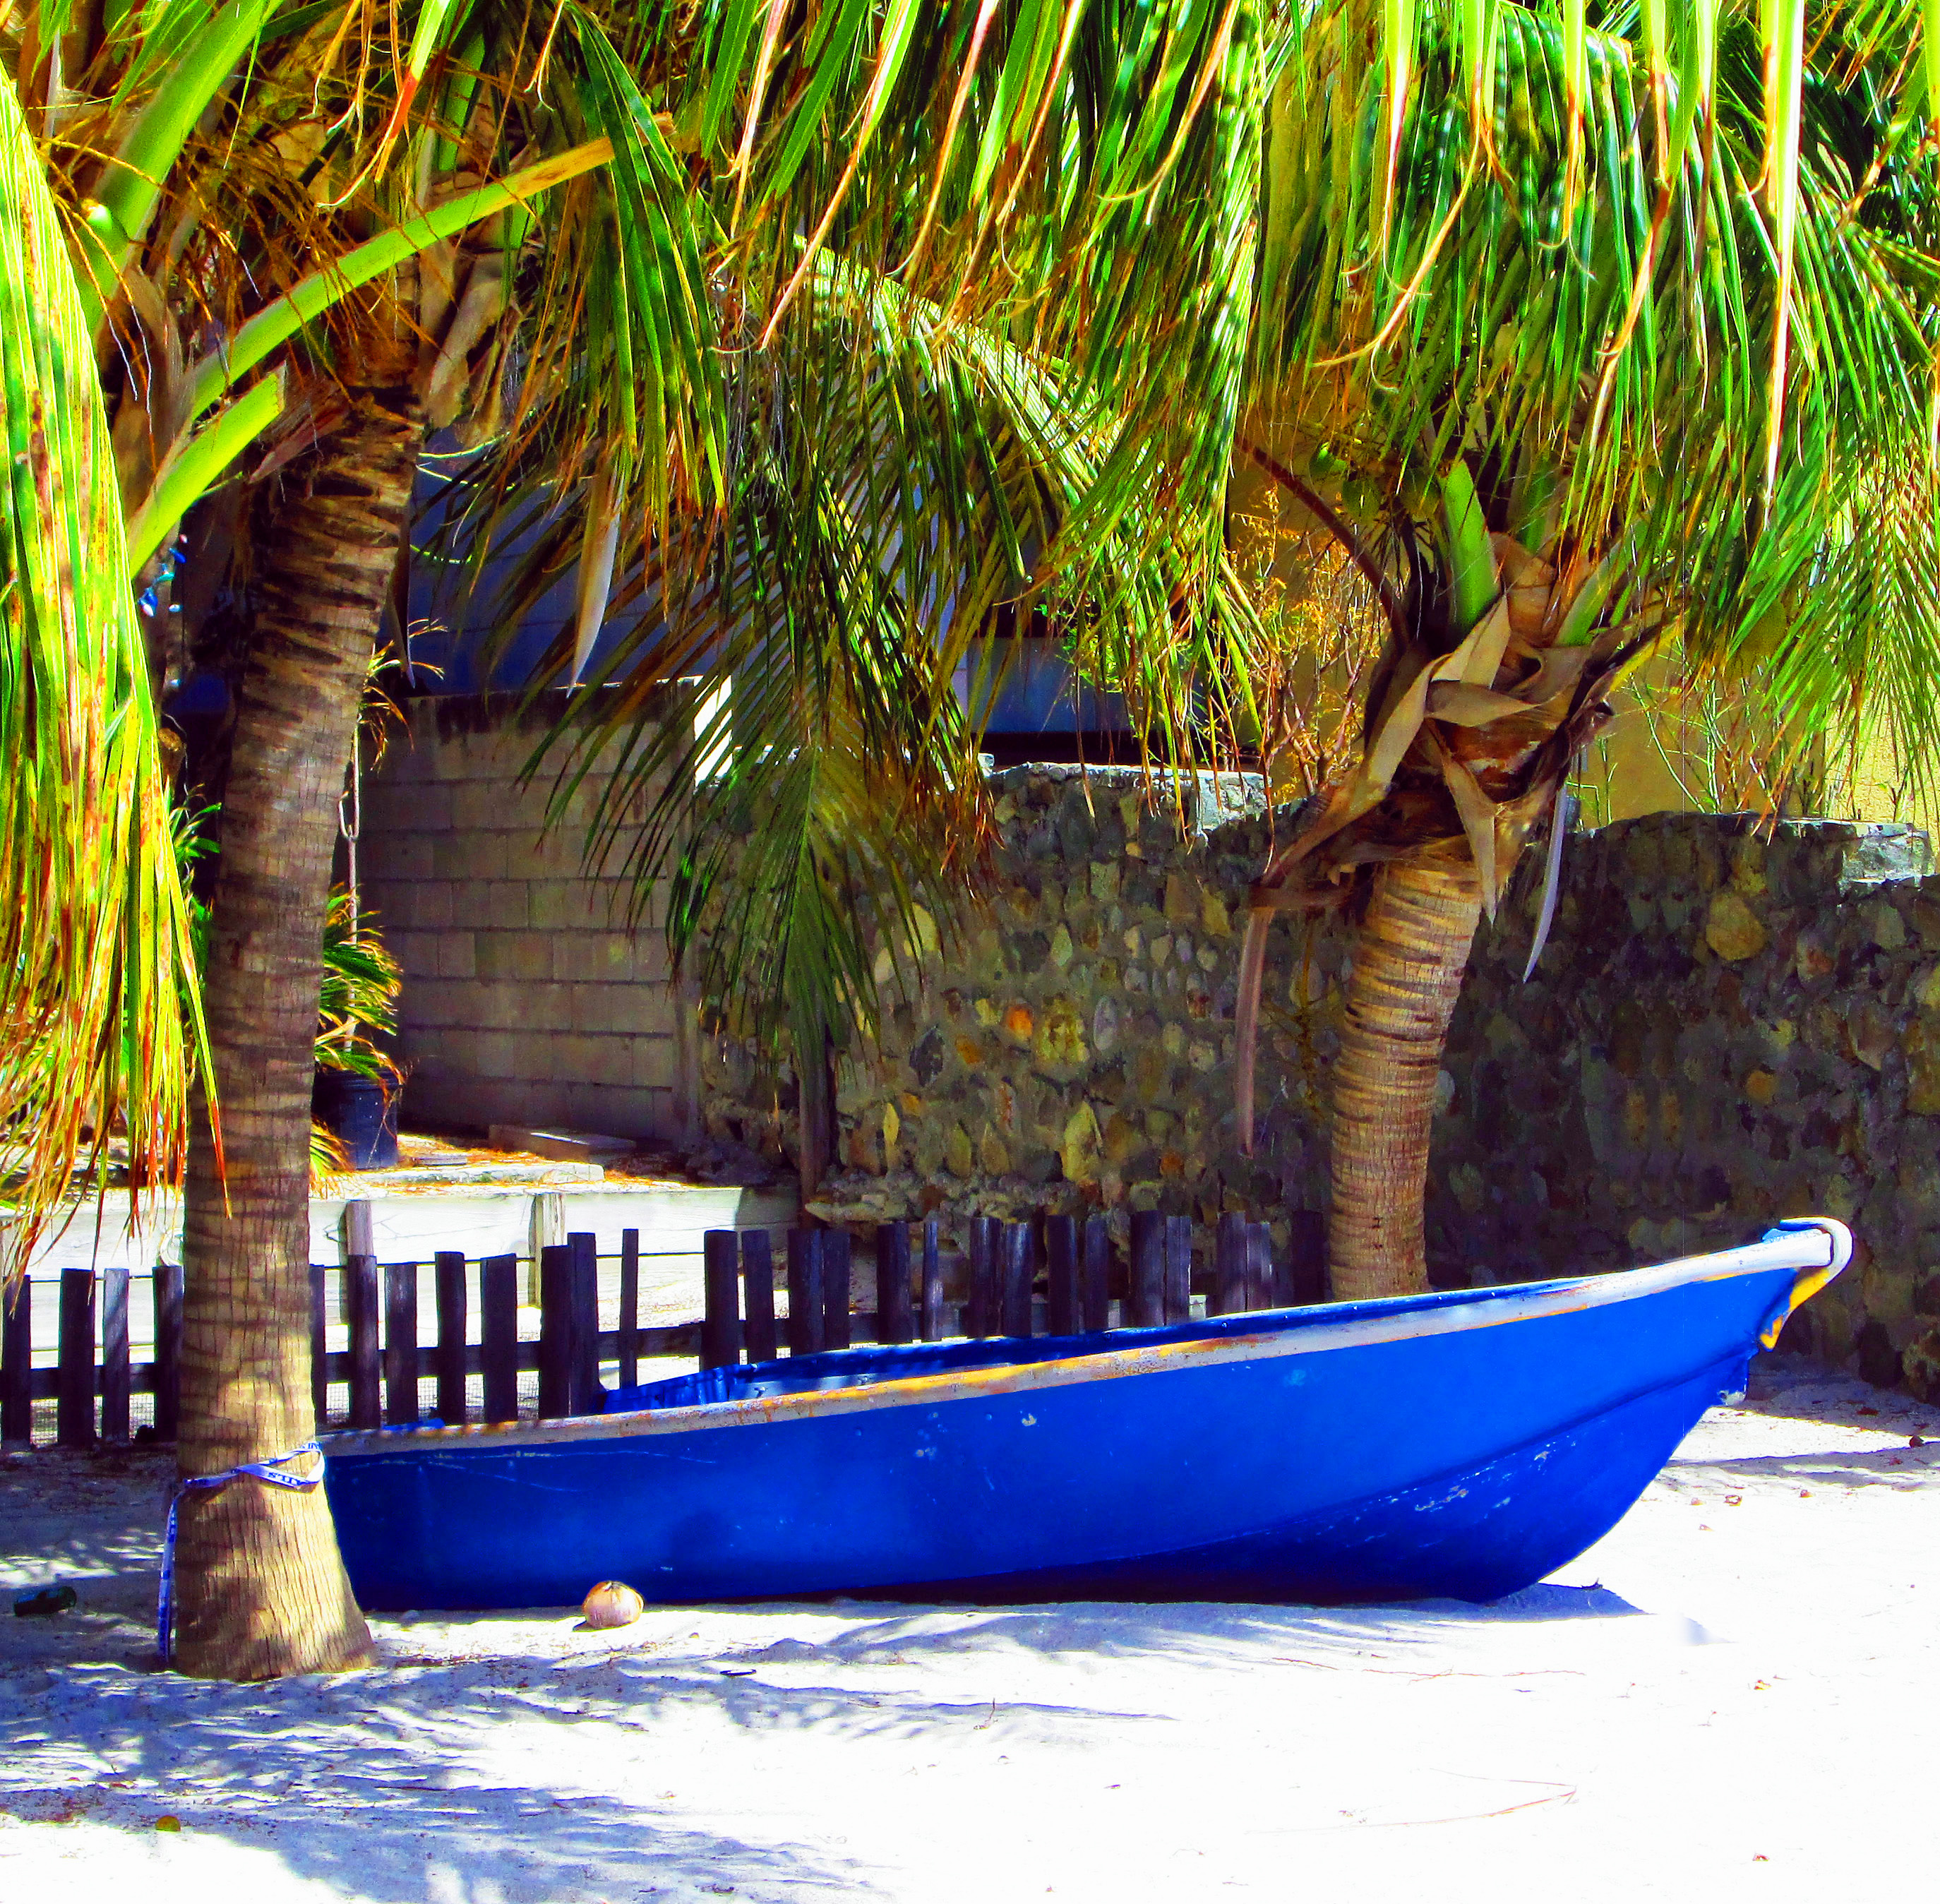 Beached-Boat-Between-Two-Palm-Trees